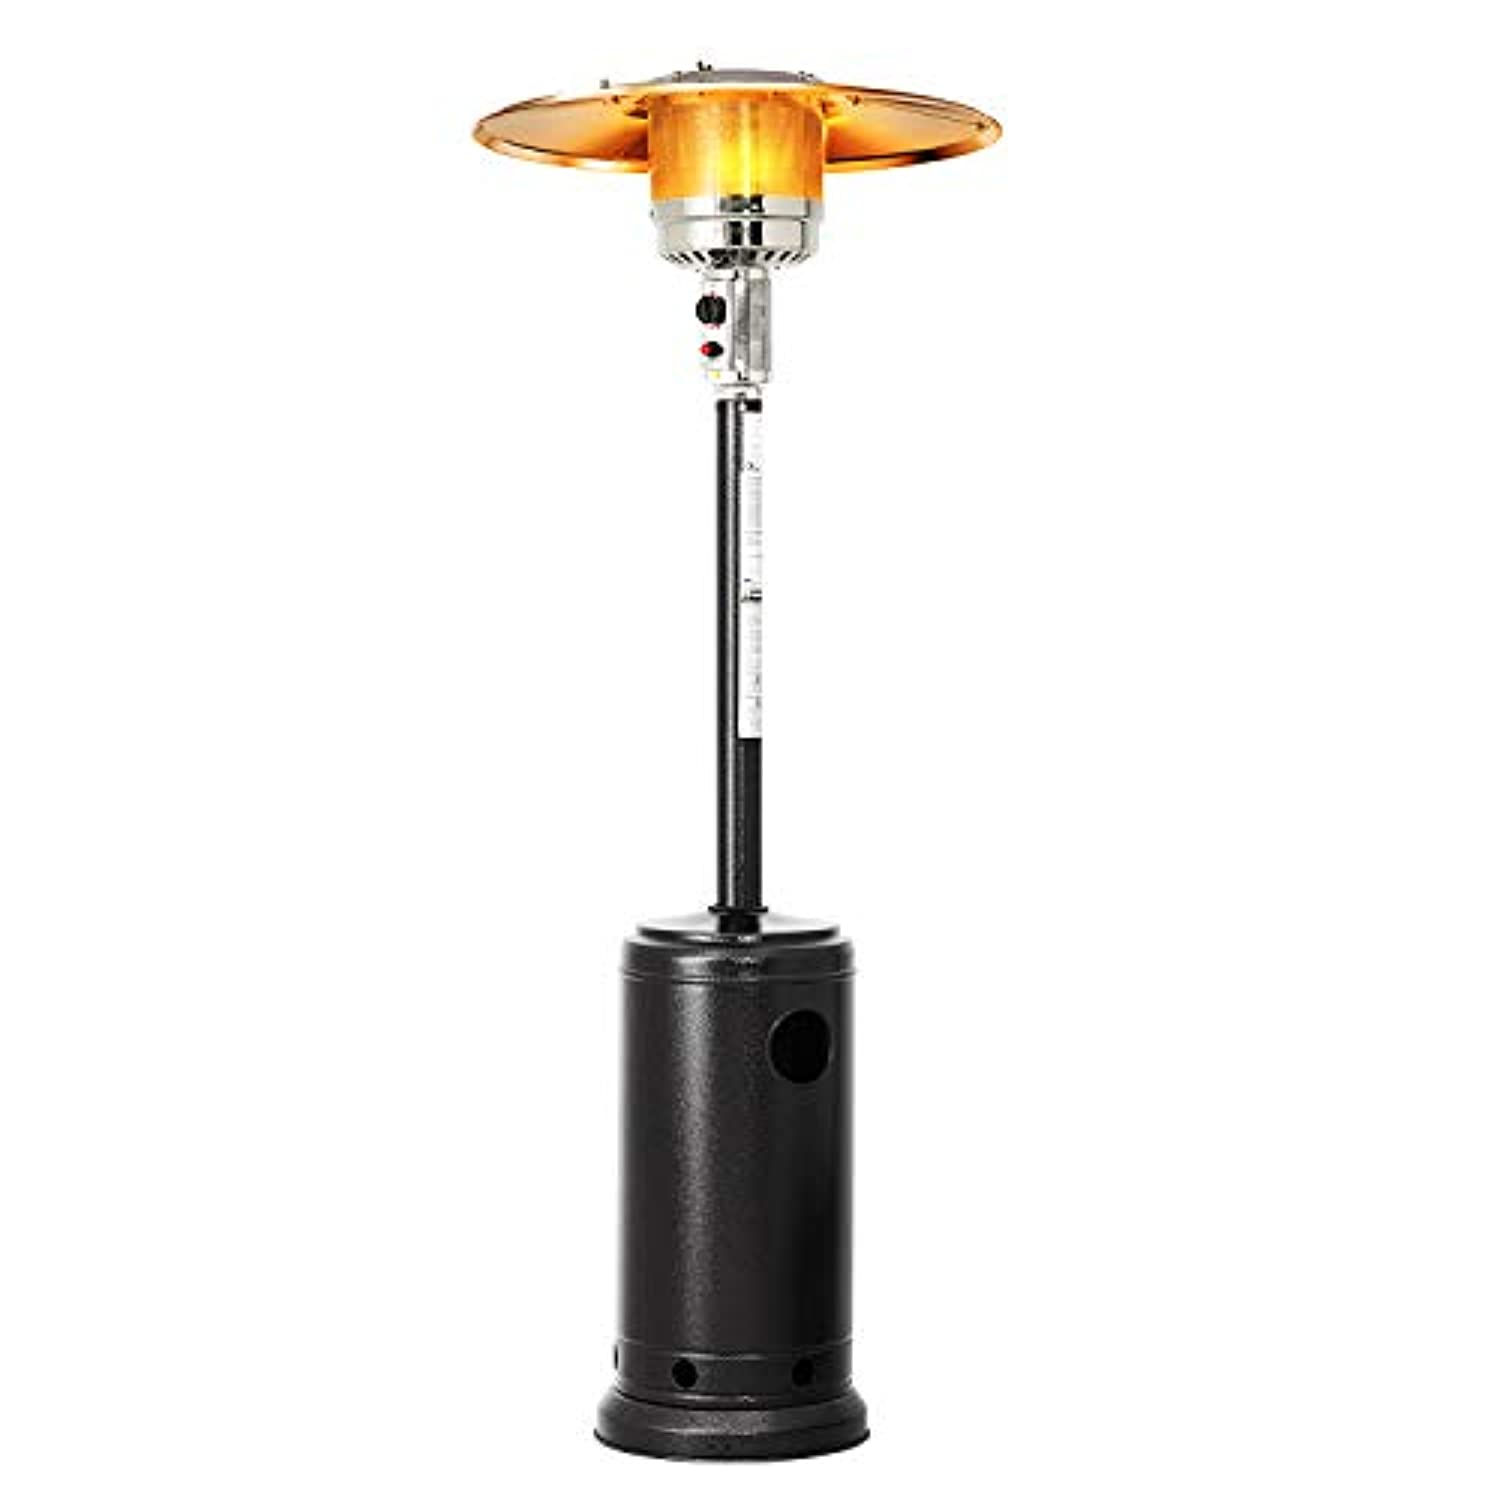 Patiomore Outdoor Propane Heater Patio Tall Standing Heater, 40000 BTU, Matte Black